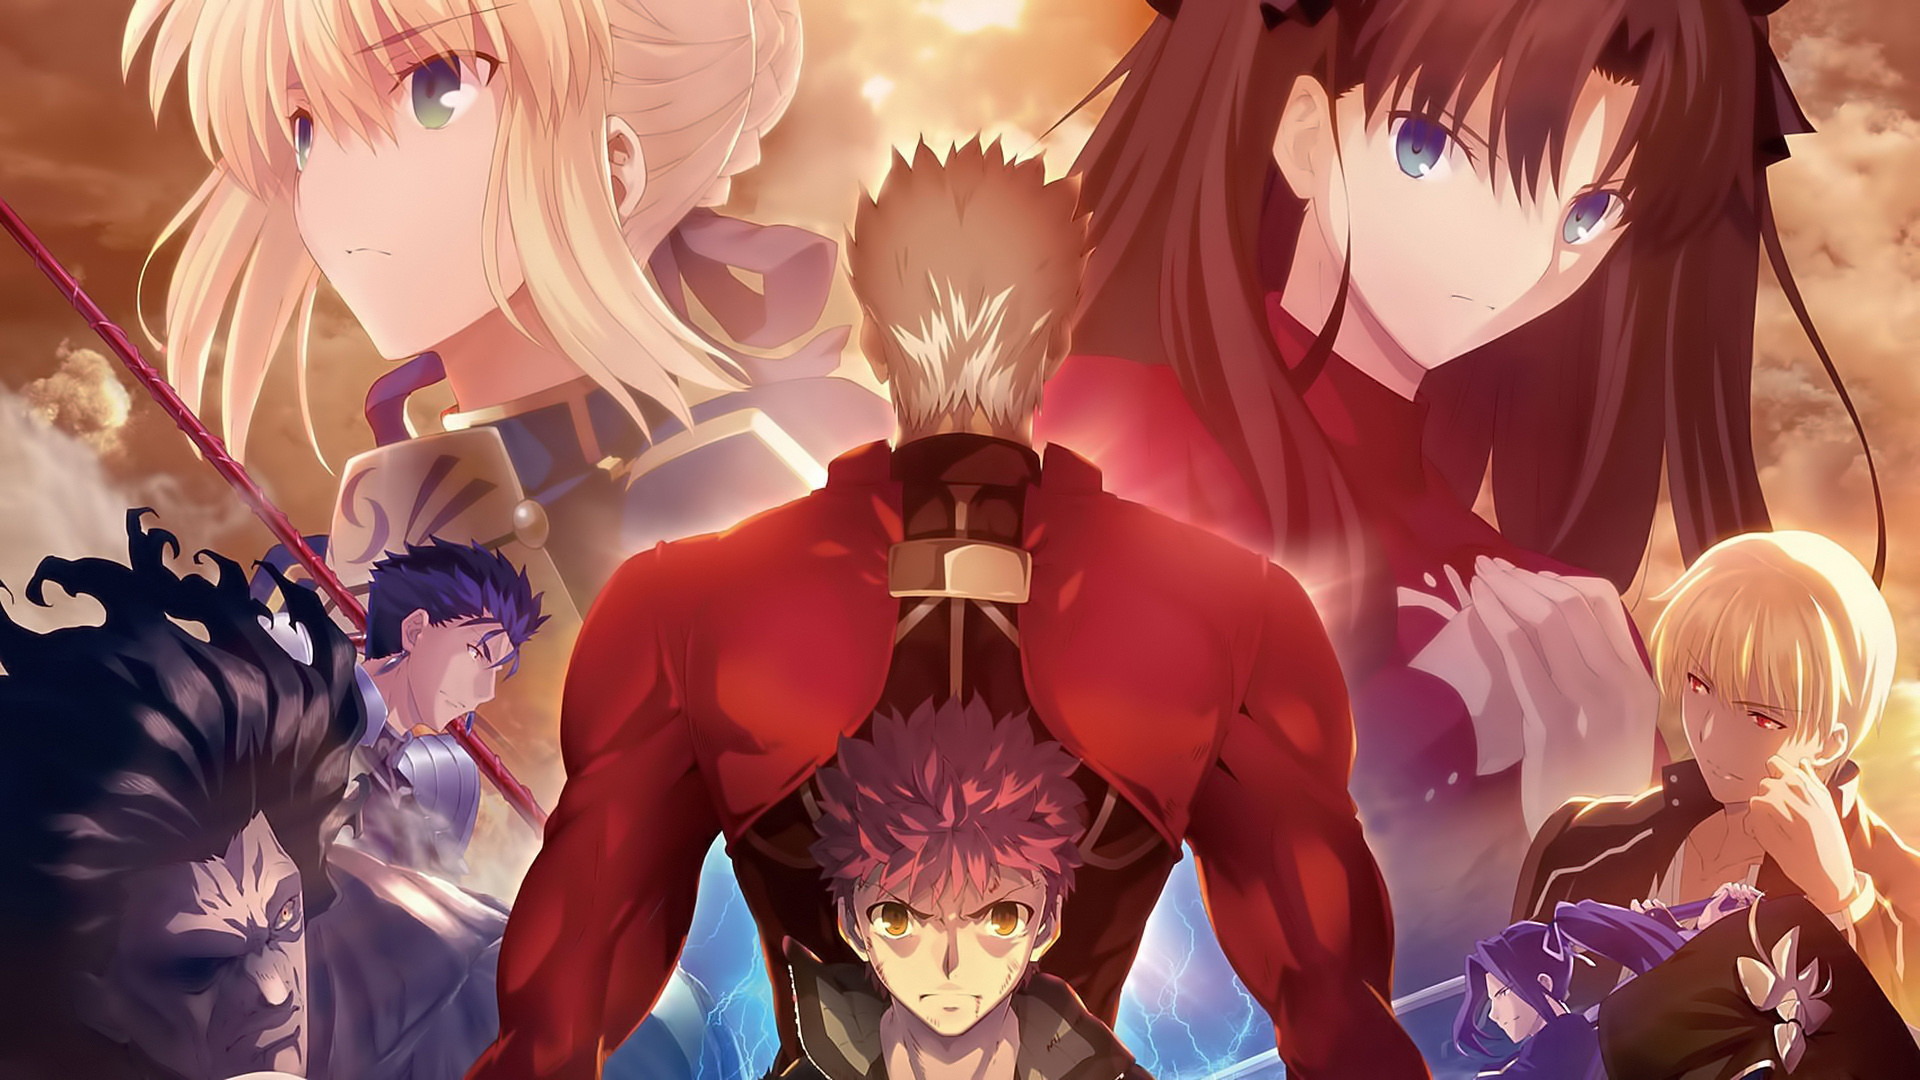 Anime – Fate/Stay Night: Unlimited Blade Works Wallpaper